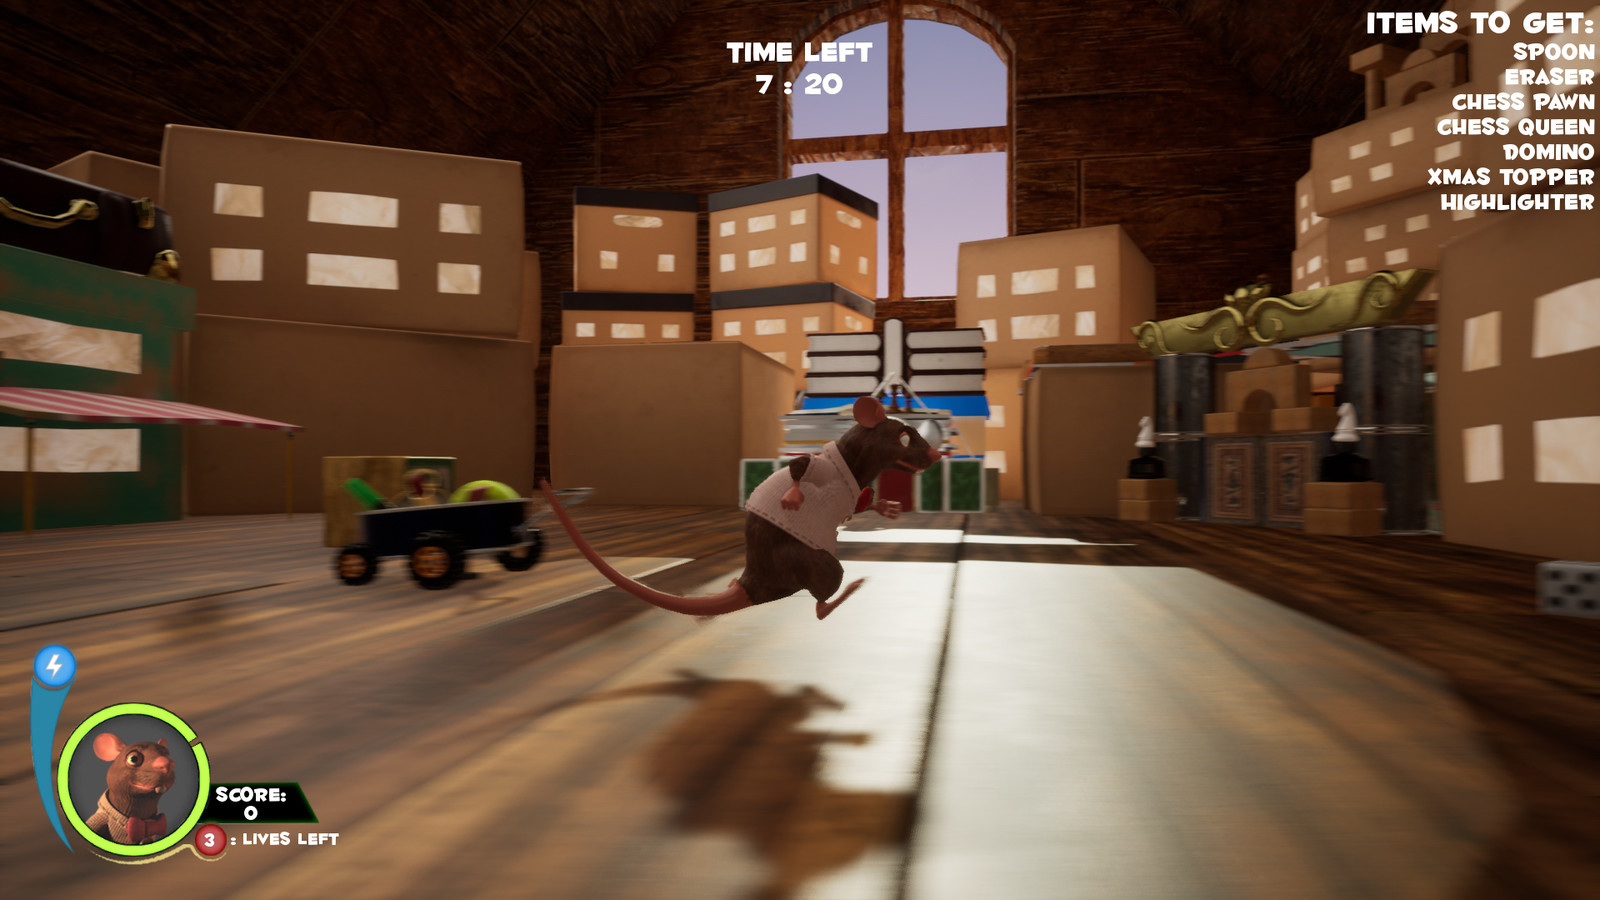 In game screenshot - The attic walls, floor and lighting were done by another team member, Lyon Chan. He was also primarily responsible for all technical work, including blueprinting, etc.